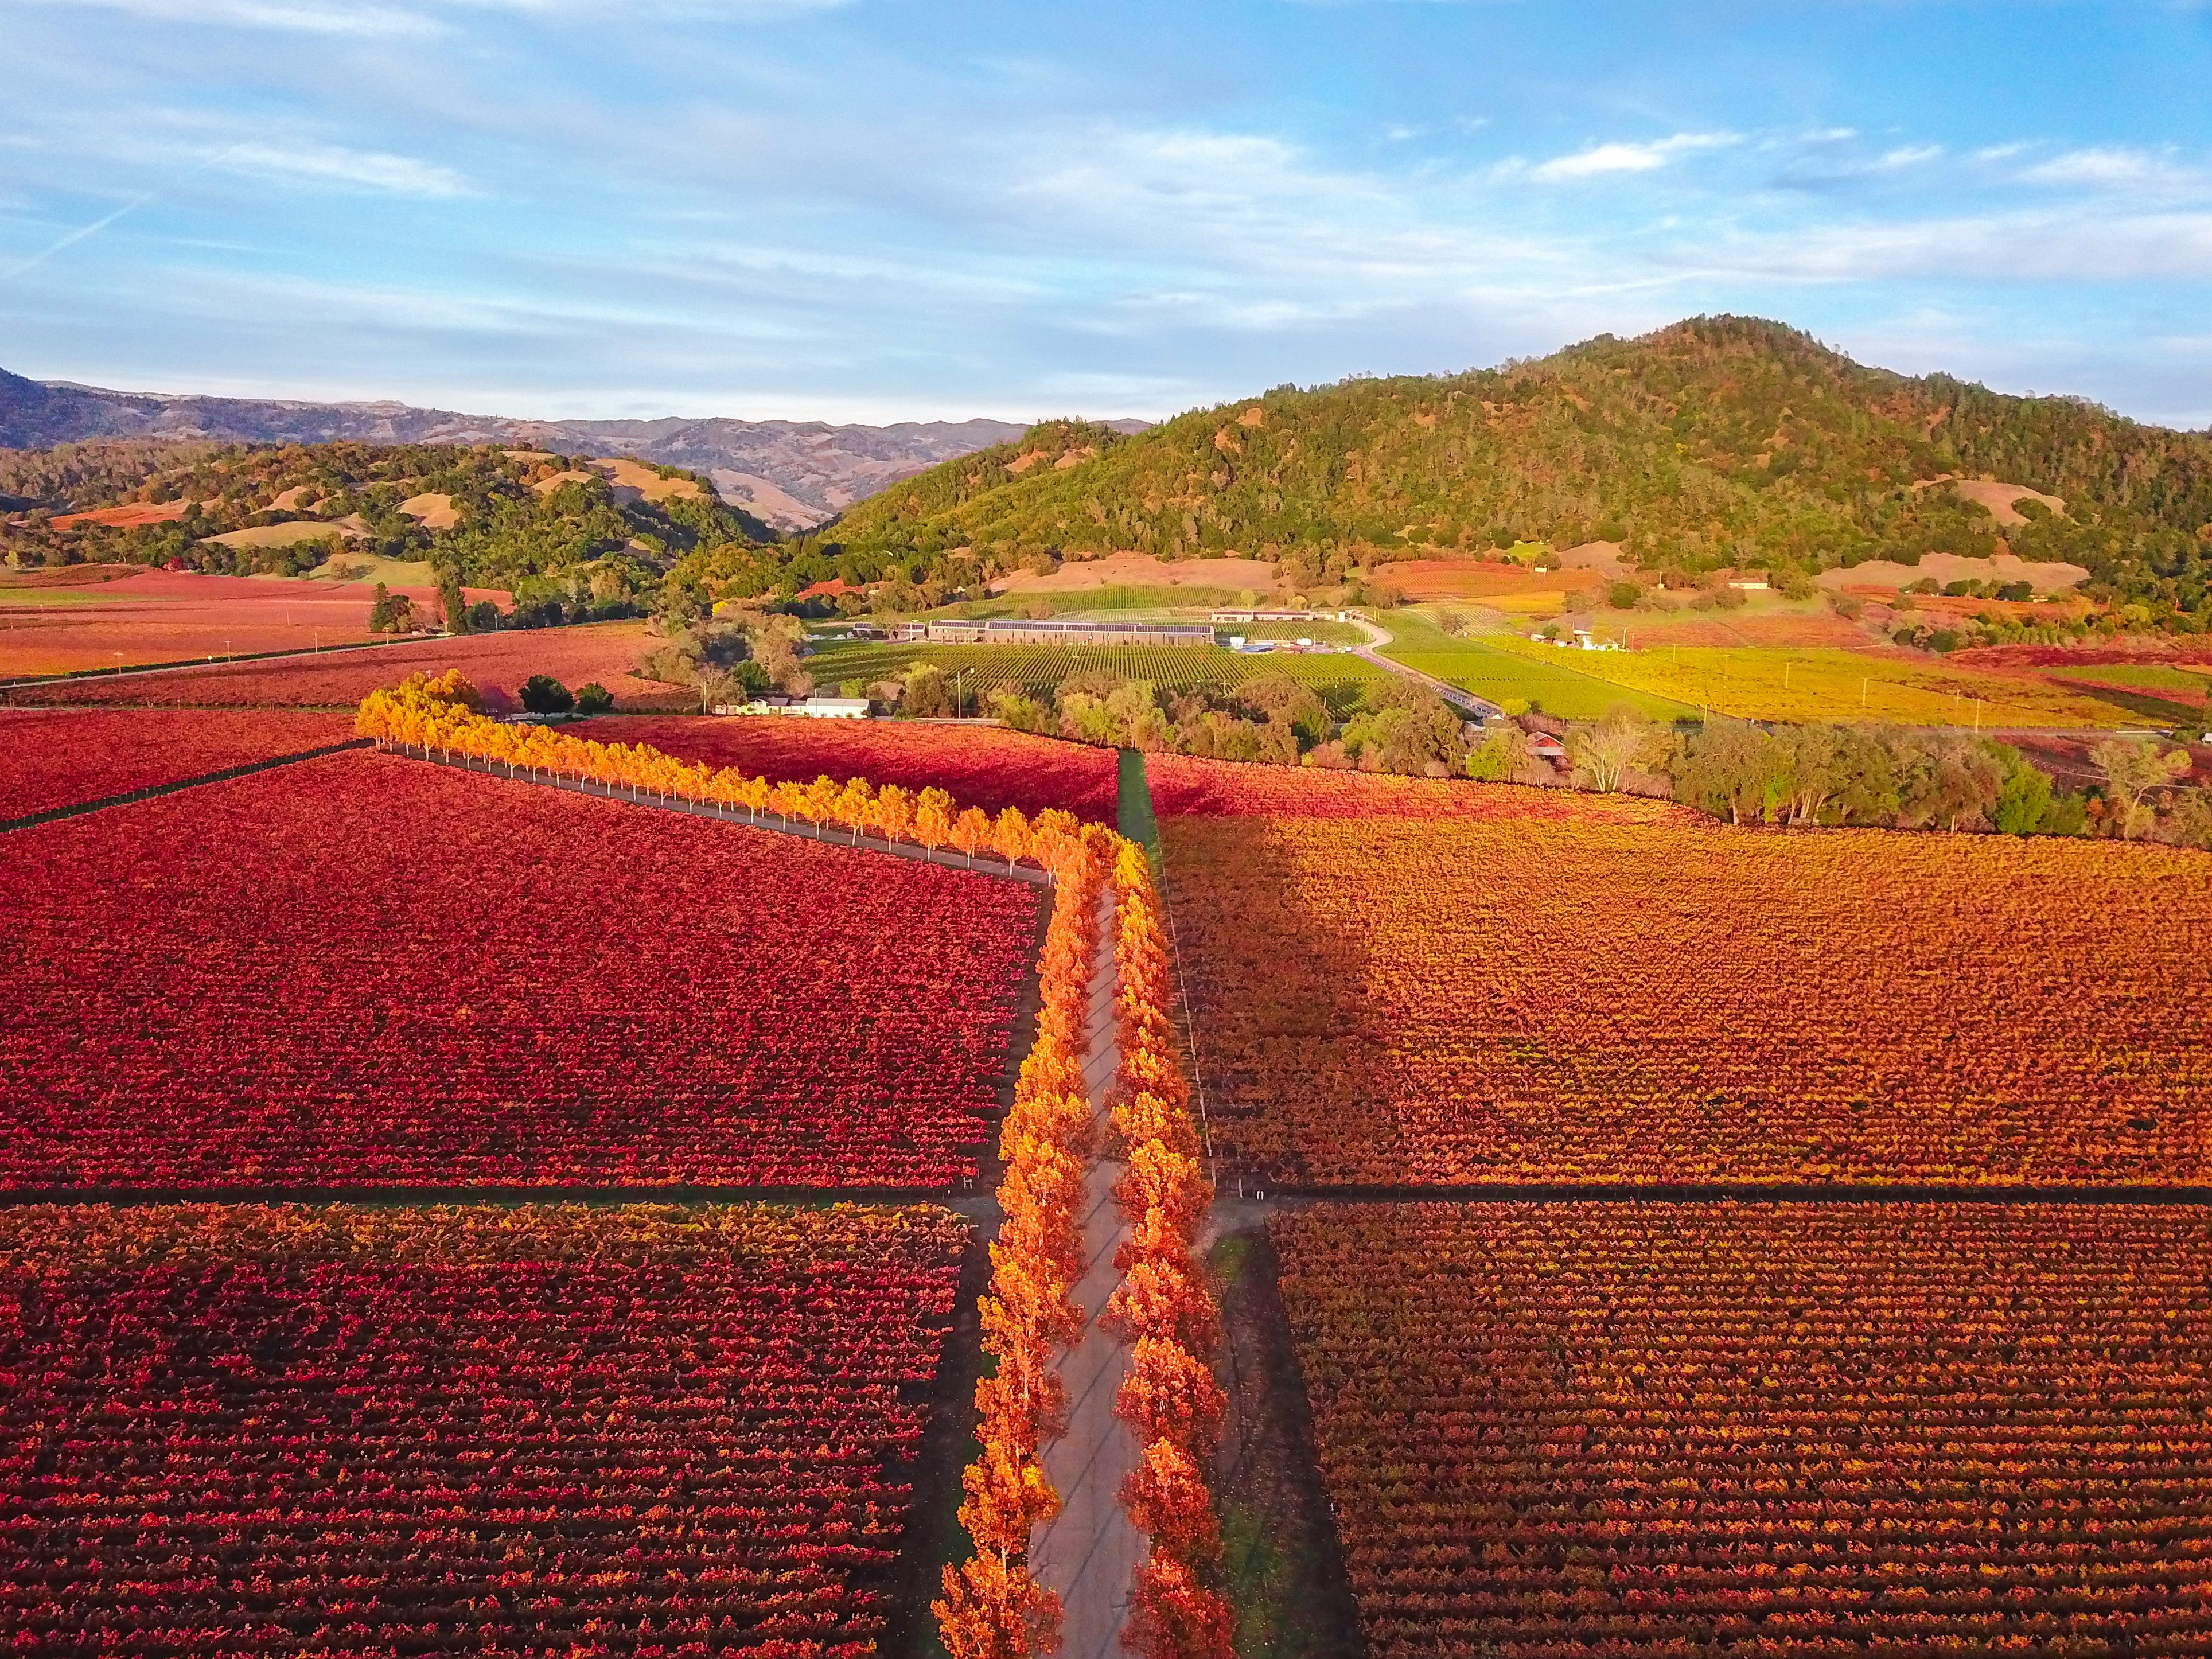 The fall colors pop in Stonestreet Winery in Alexander Valley near Healdsburg, Sonoma County, California